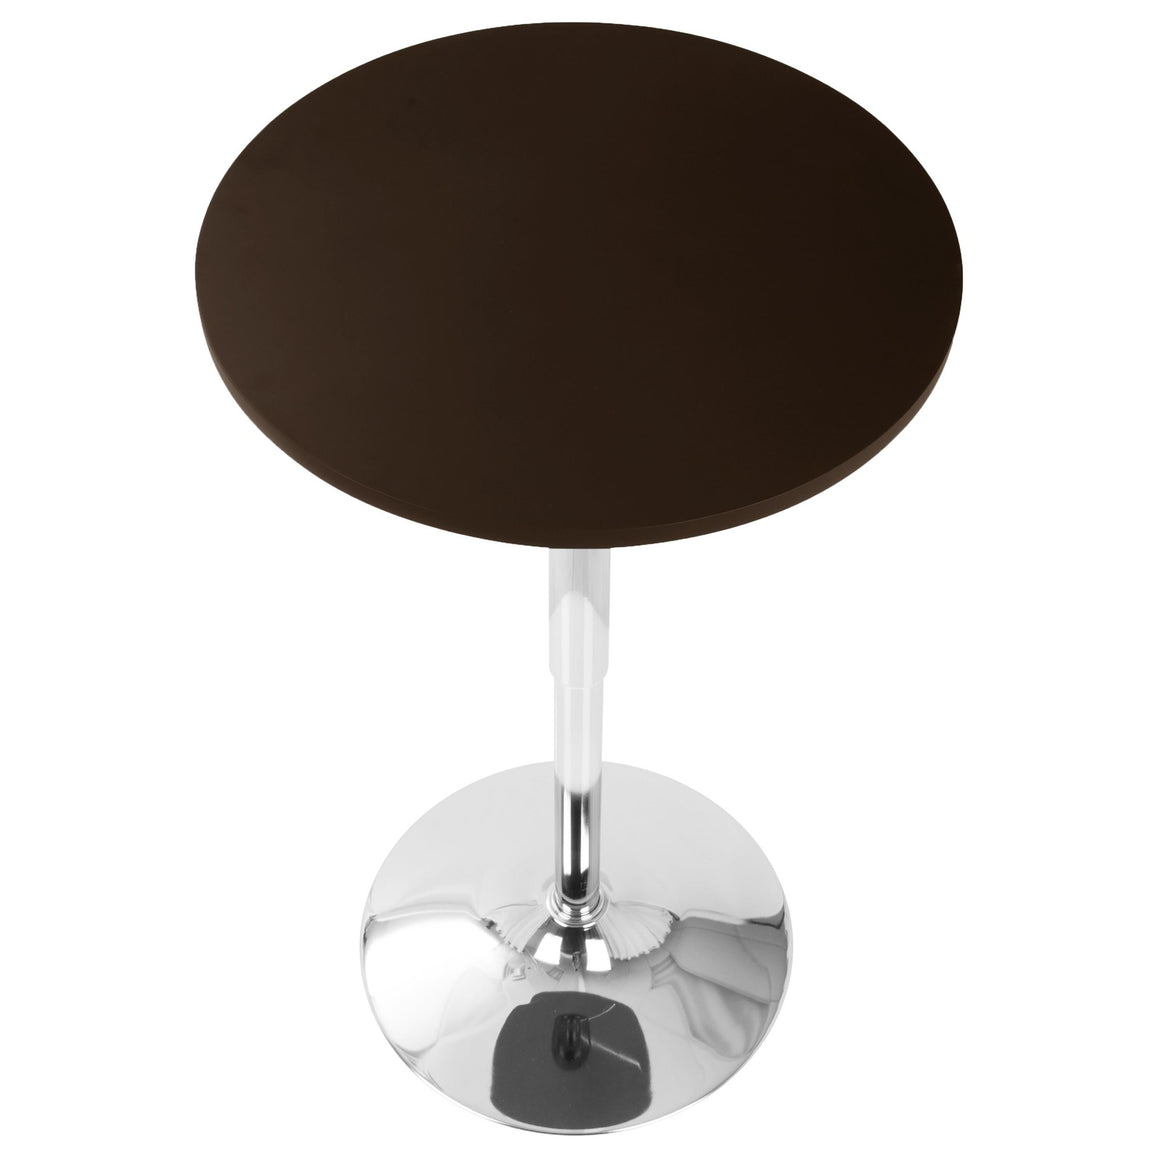 Adjustable Contemporary Bar Table in Brown by LumiSource